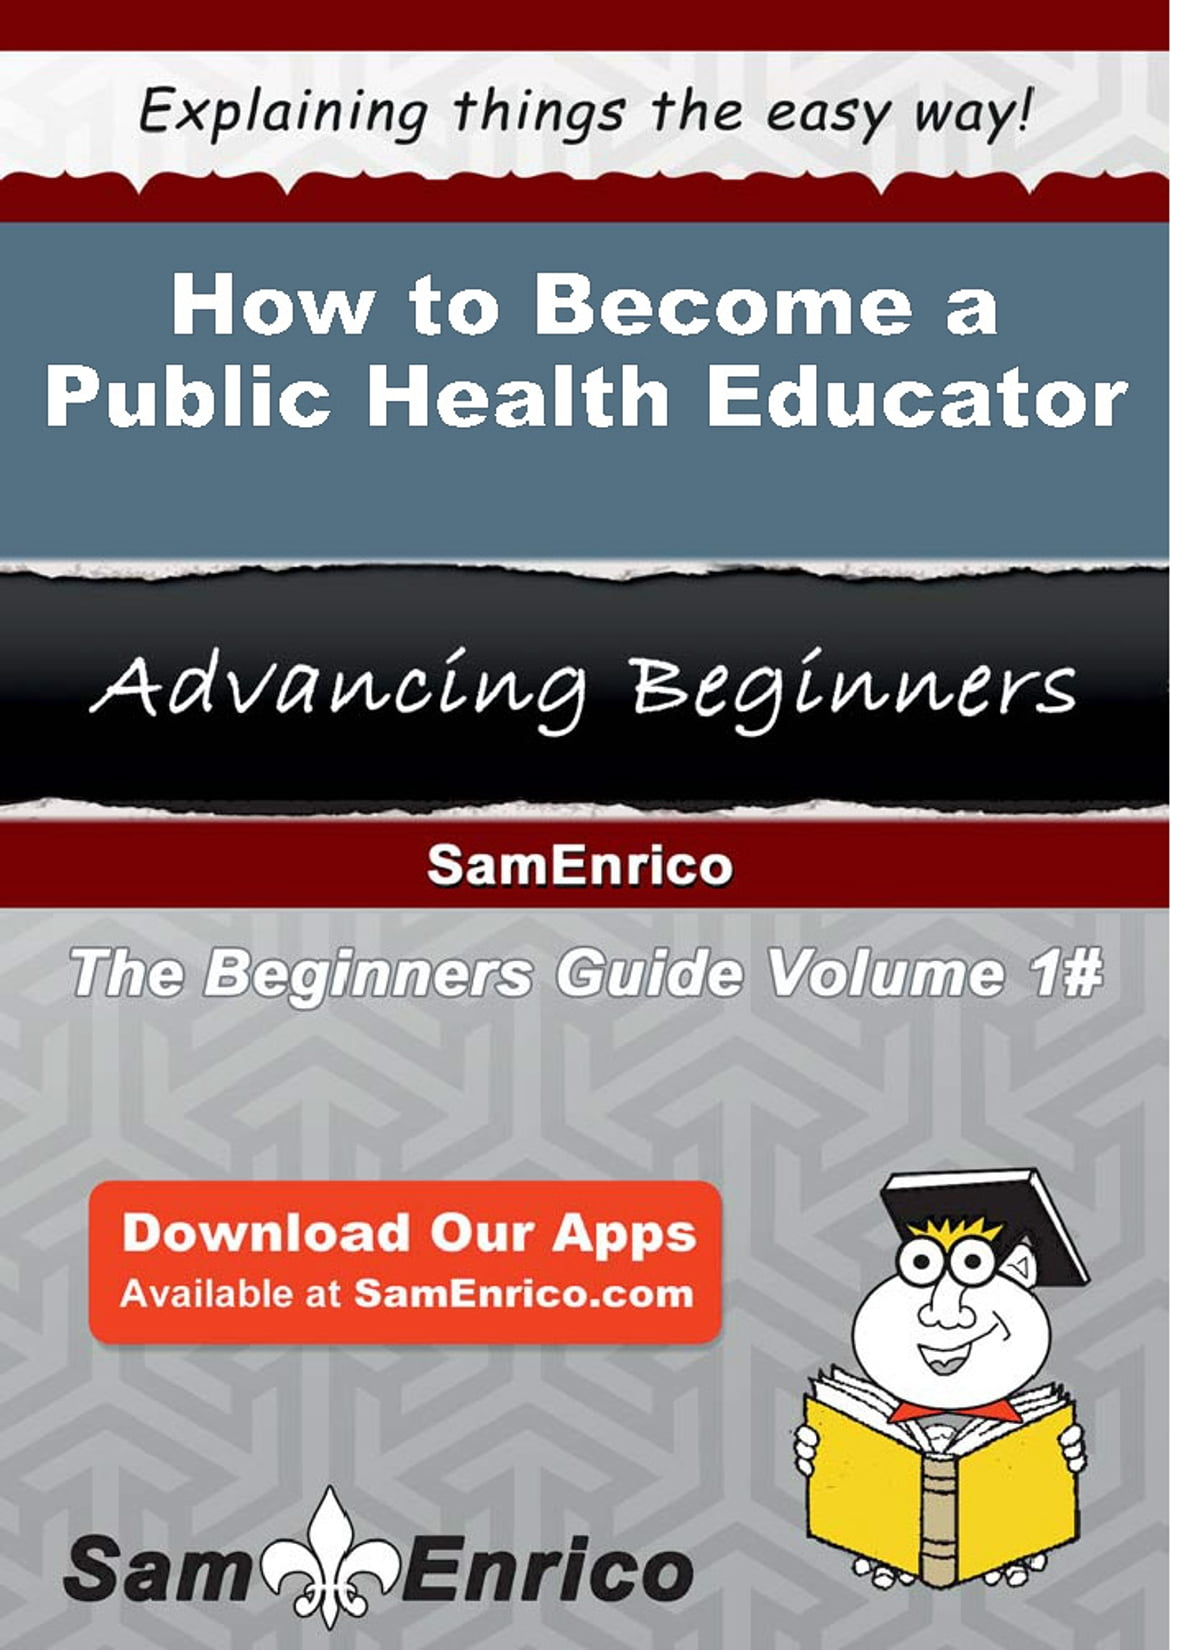 Watch How to Become a Health Educator video